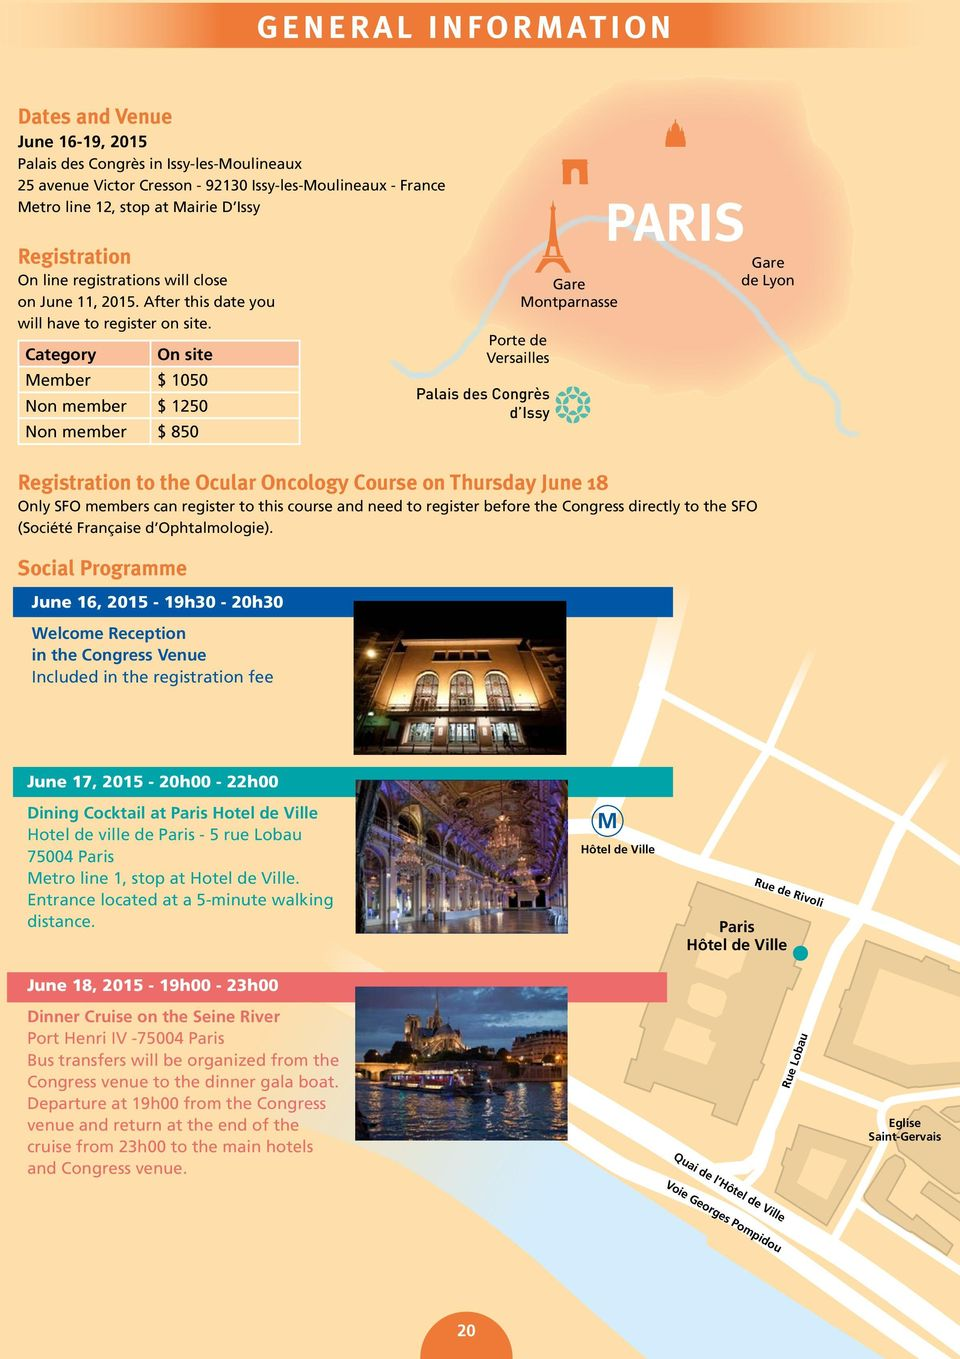 Category On site Member $ 1050 Non member $ 1250 Non member $ 850 Porte de Versailles Palais des Congrès d Issy Gare Montparnasse PARIS Registration to the Ocular Oncology Course on Thursday June 18